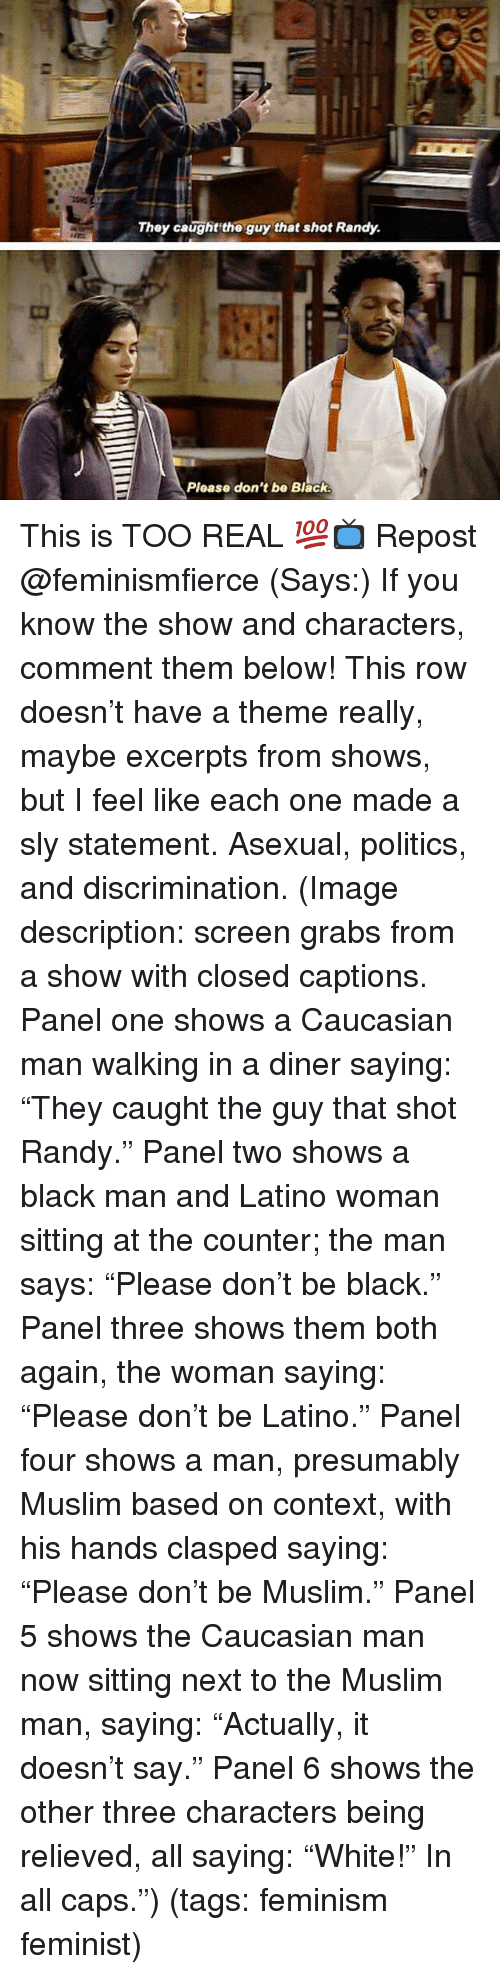 "Feminism, Memes, and Muslim: They caught the guy that shot Randy.  Ploase don't be Black This is TOO REAL 💯📺 Repost @feminismfierce (Says:) If you know the show and characters, comment them below! This row doesn't have a theme really, maybe excerpts from shows, but I feel like each one made a sly statement. Asexual, politics, and discrimination. (Image description: screen grabs from a show with closed captions. Panel one shows a Caucasian man walking in a diner saying: ""They caught the guy that shot Randy."" Panel two shows a black man and Latino woman sitting at the counter; the man says: ""Please don't be black."" Panel three shows them both again, the woman saying: ""Please don't be Latino."" Panel four shows a man, presumably Muslim based on context, with his hands clasped saying: ""Please don't be Muslim."" Panel 5 shows the Caucasian man now sitting next to the Muslim man, saying: ""Actually, it doesn't say."" Panel 6 shows the other three characters being relieved, all saying: ""White!"" In all caps."") (tags: feminism feminist)"